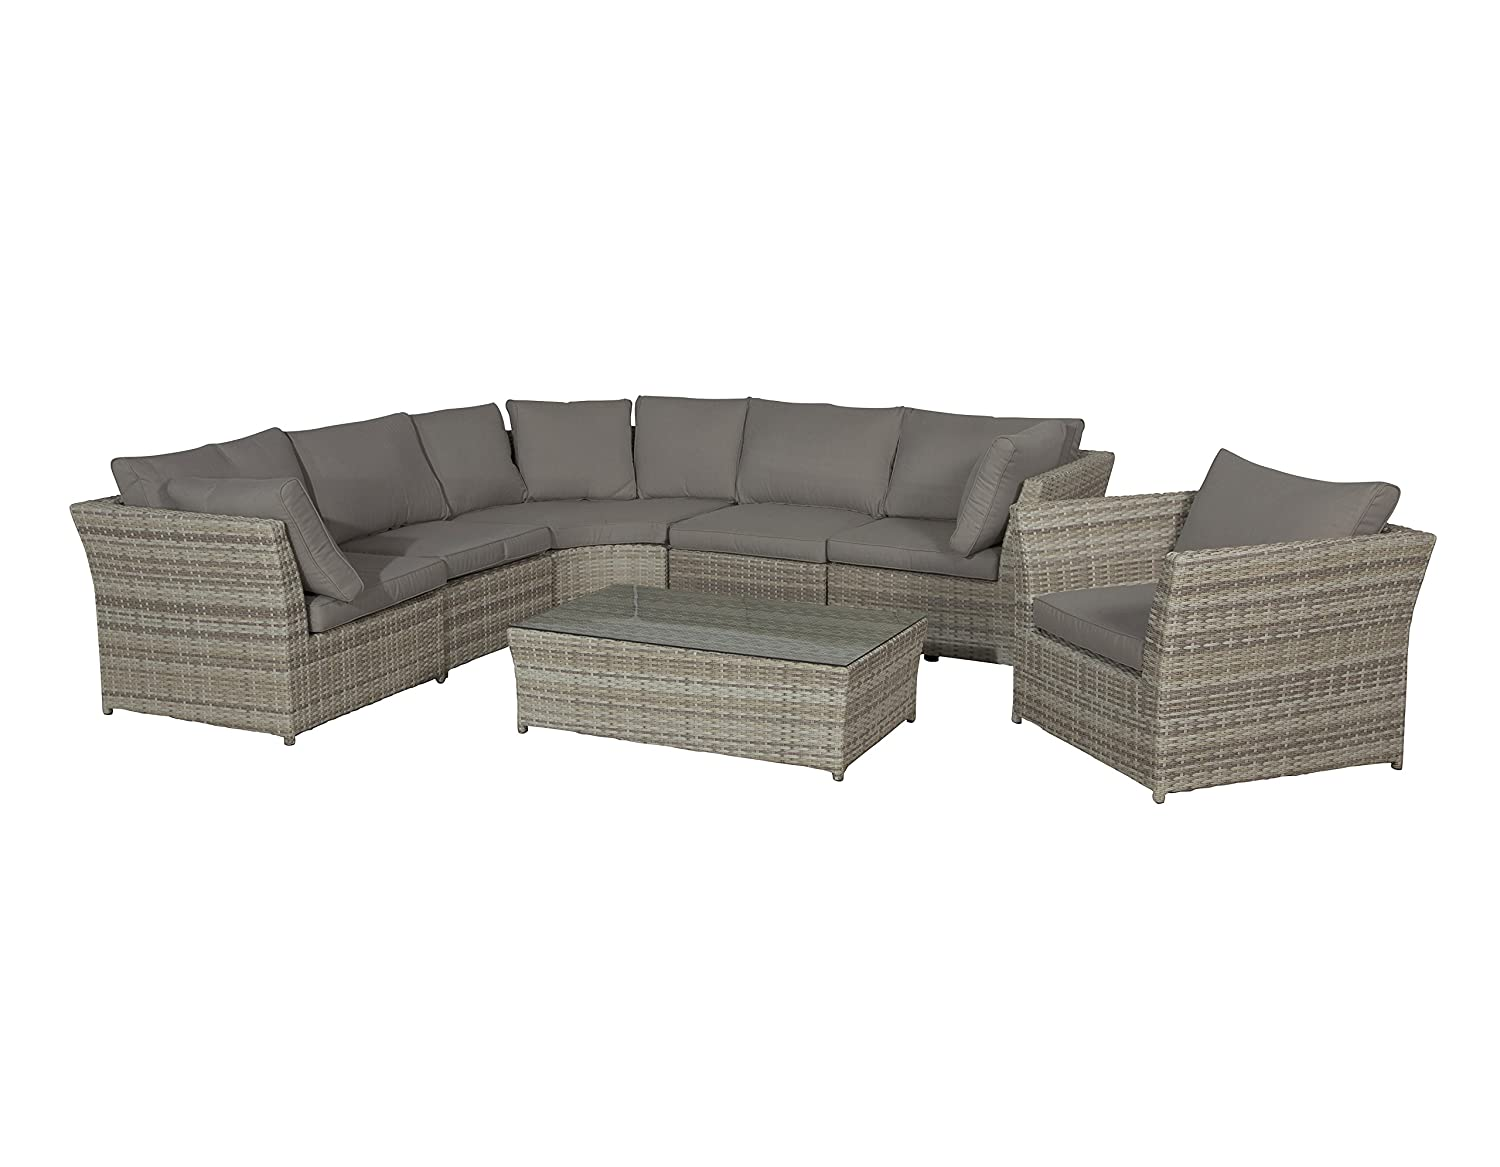 Garden Impressions Lounge Set Dubai Passion Willow, 7-teilig